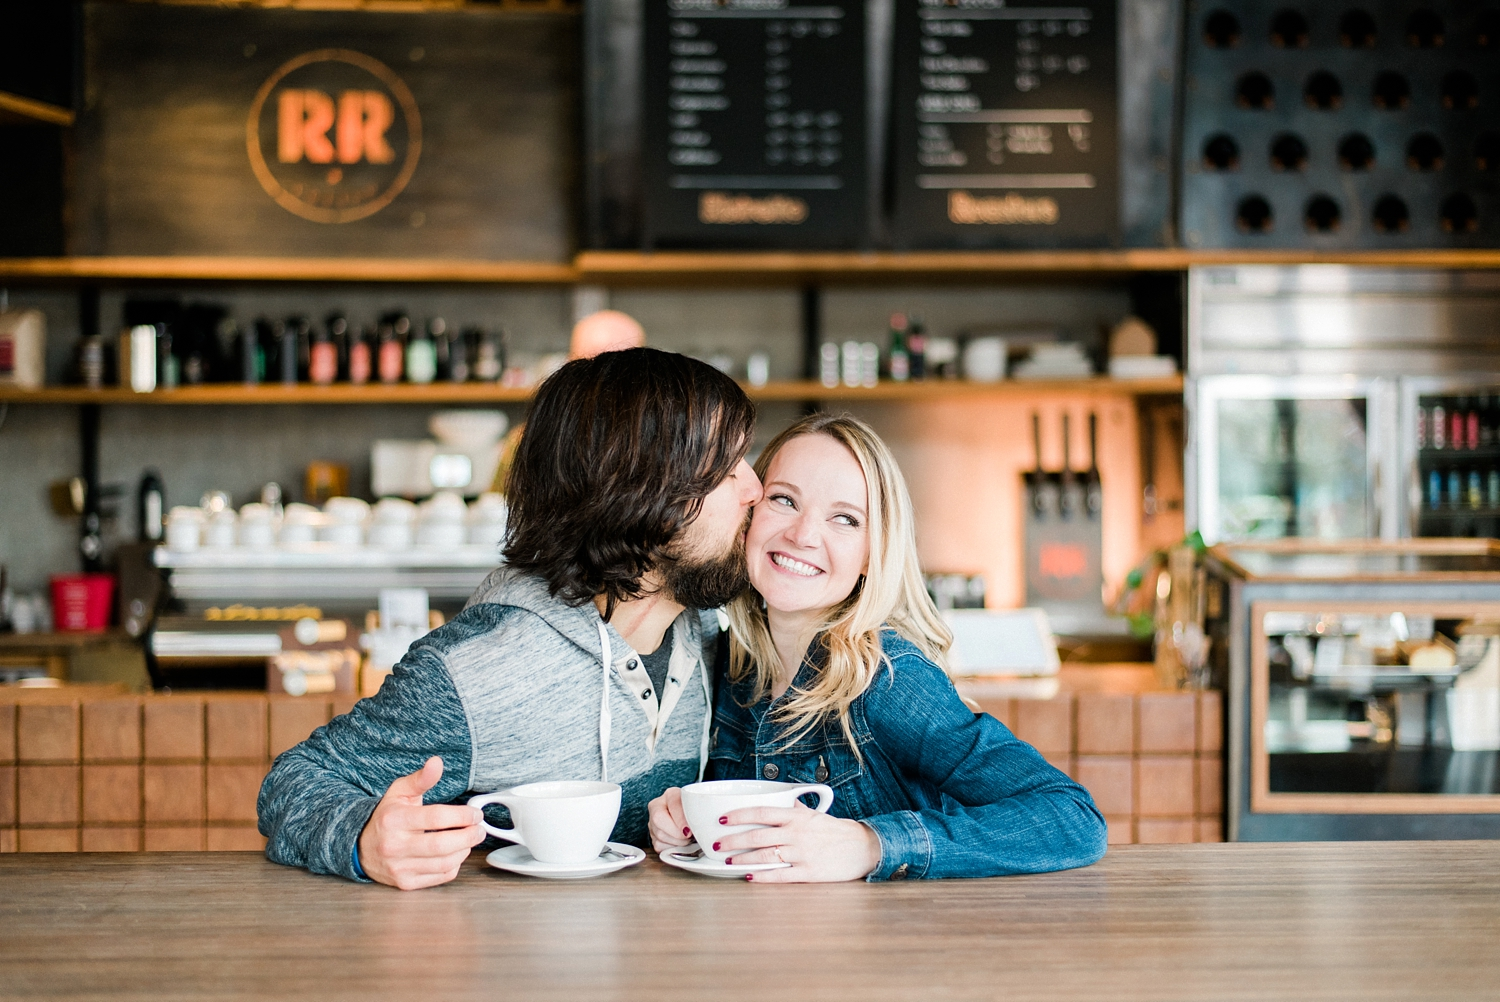 portland-coffee-engagement-session-ristretto-roasters-shelley-marie-photo-044_cr.jpg